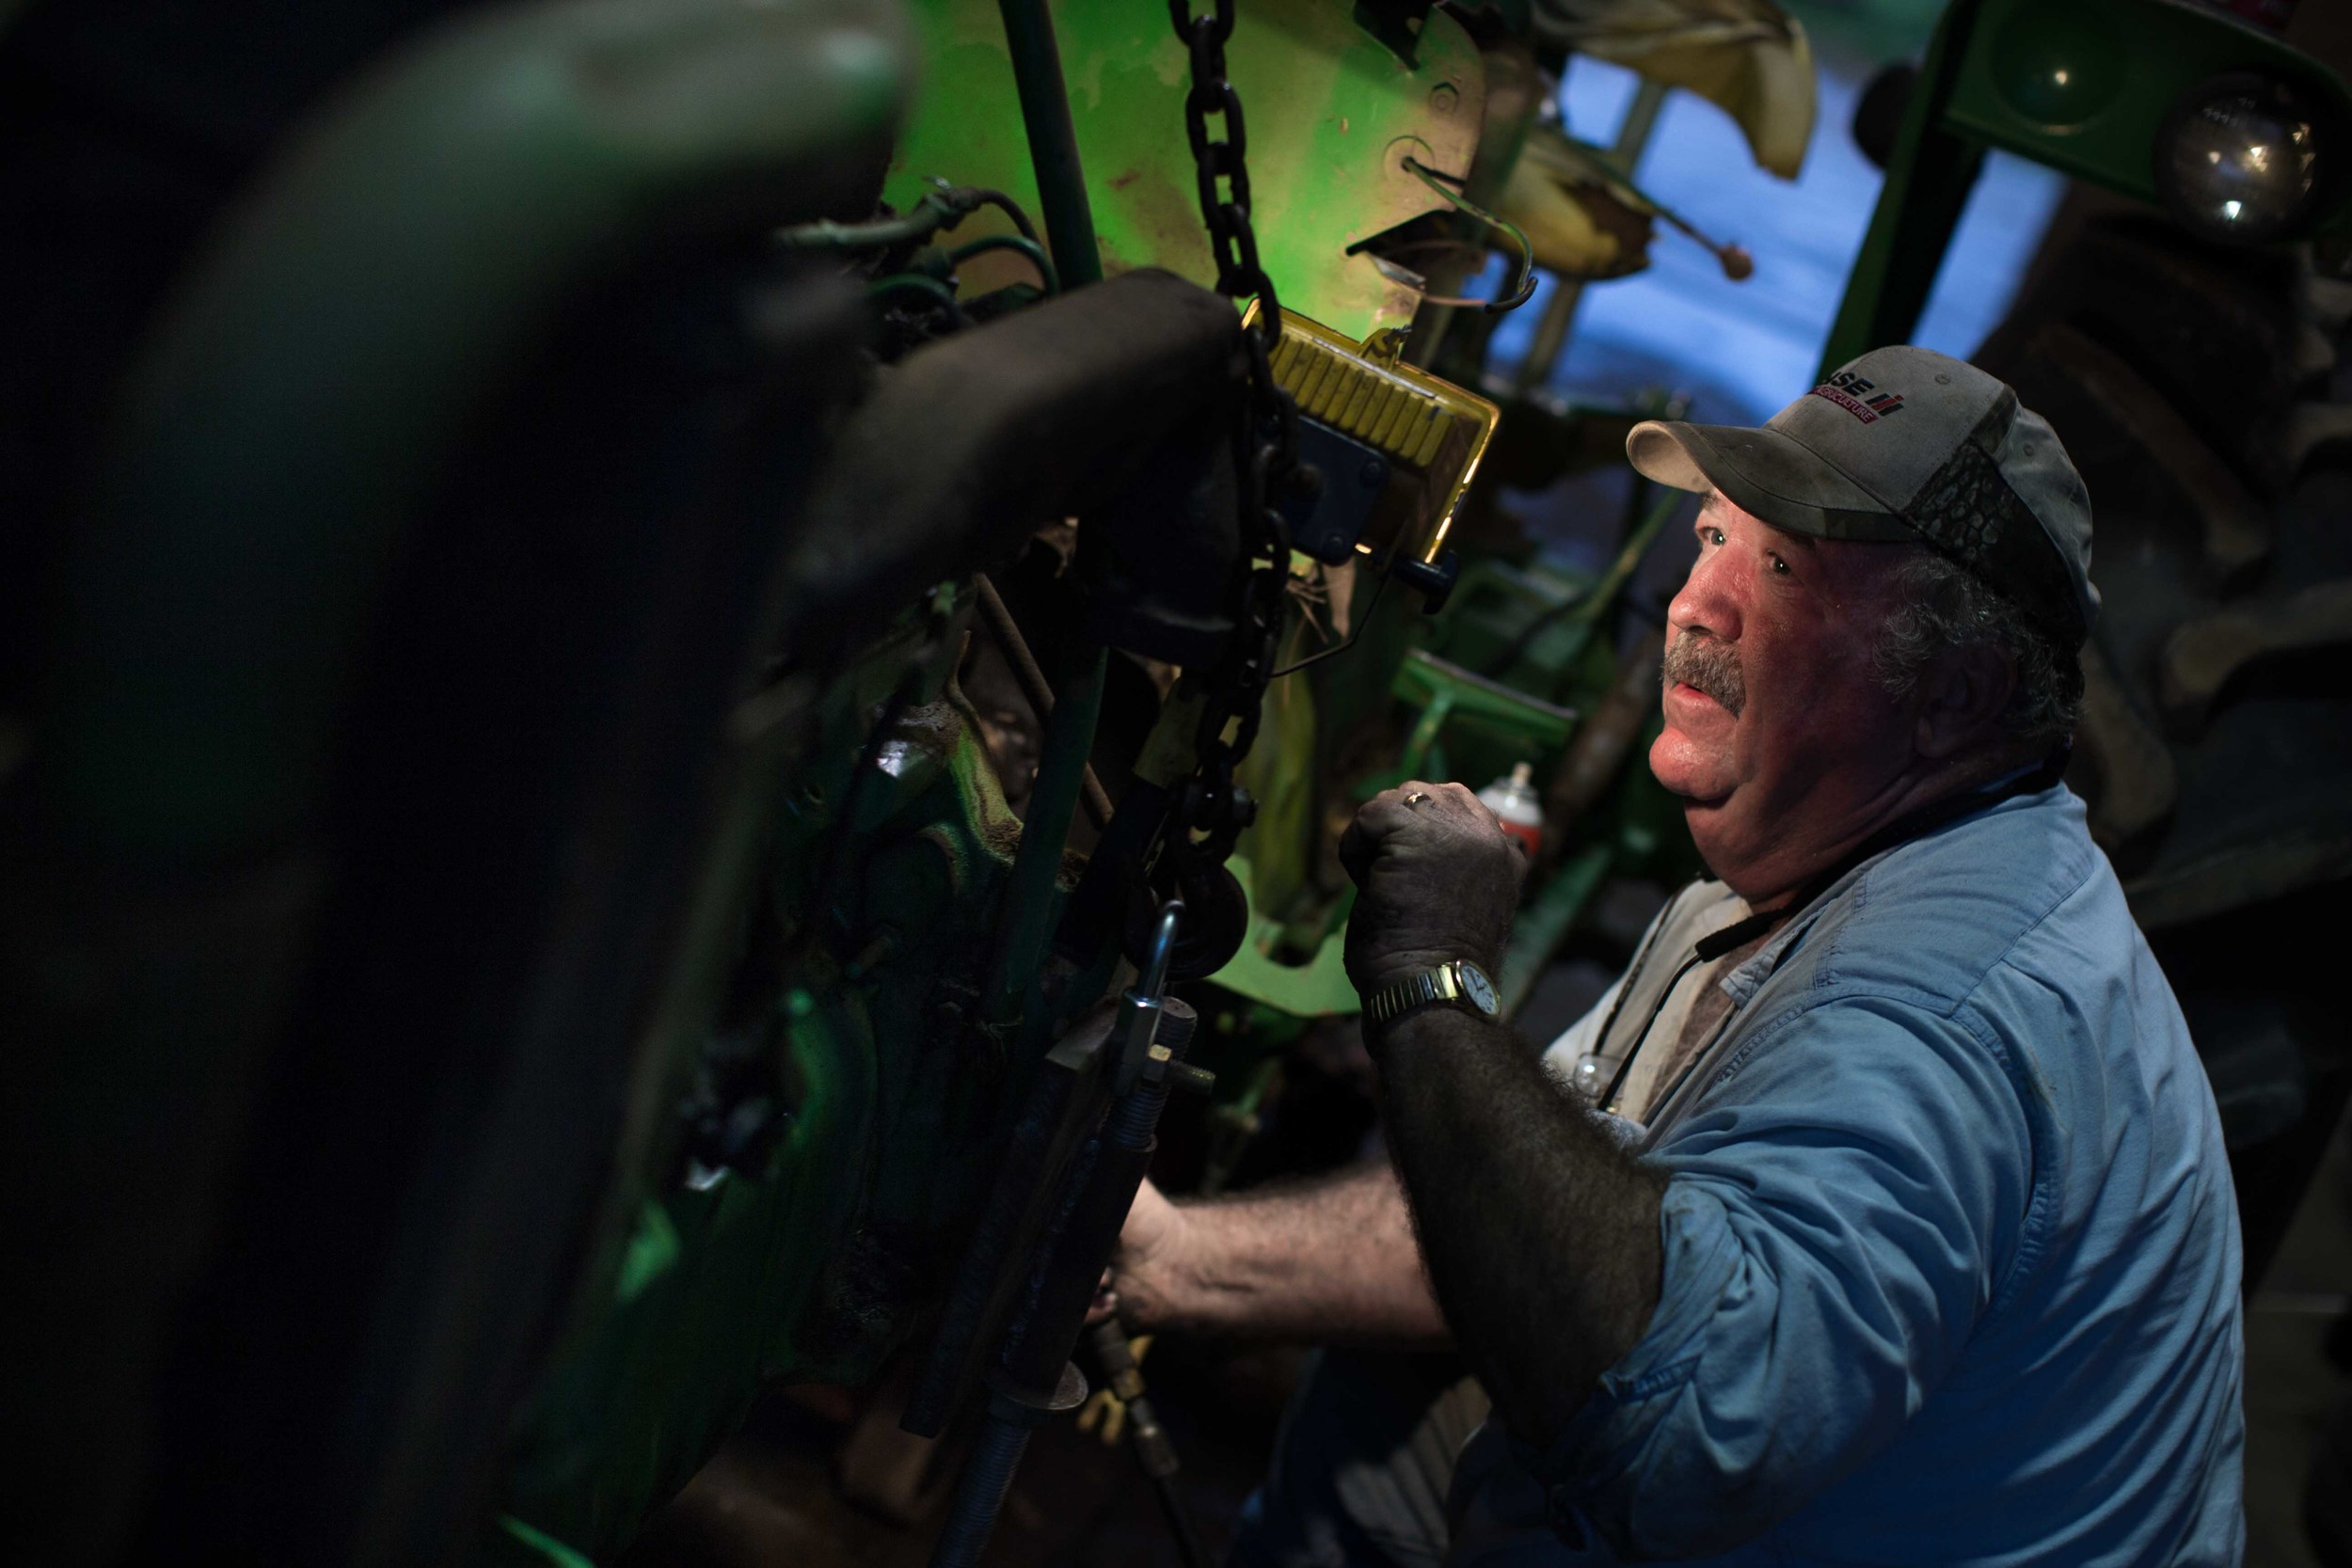 Farmer Phil Sanders works on his John Deere tractor at Buffalo Creek Straw and Seed Farm, Wednesday, Feb. 3, 2016, in Stephens, Ga.With over 42,000 farmers working in the Georgia agriculture industry, farming contributes over $73 Billion to Georgia's economy each year. Forecasters say profits are expected be down as well as exports nationwide due to a fragile world economy. Photo by Branden Camp